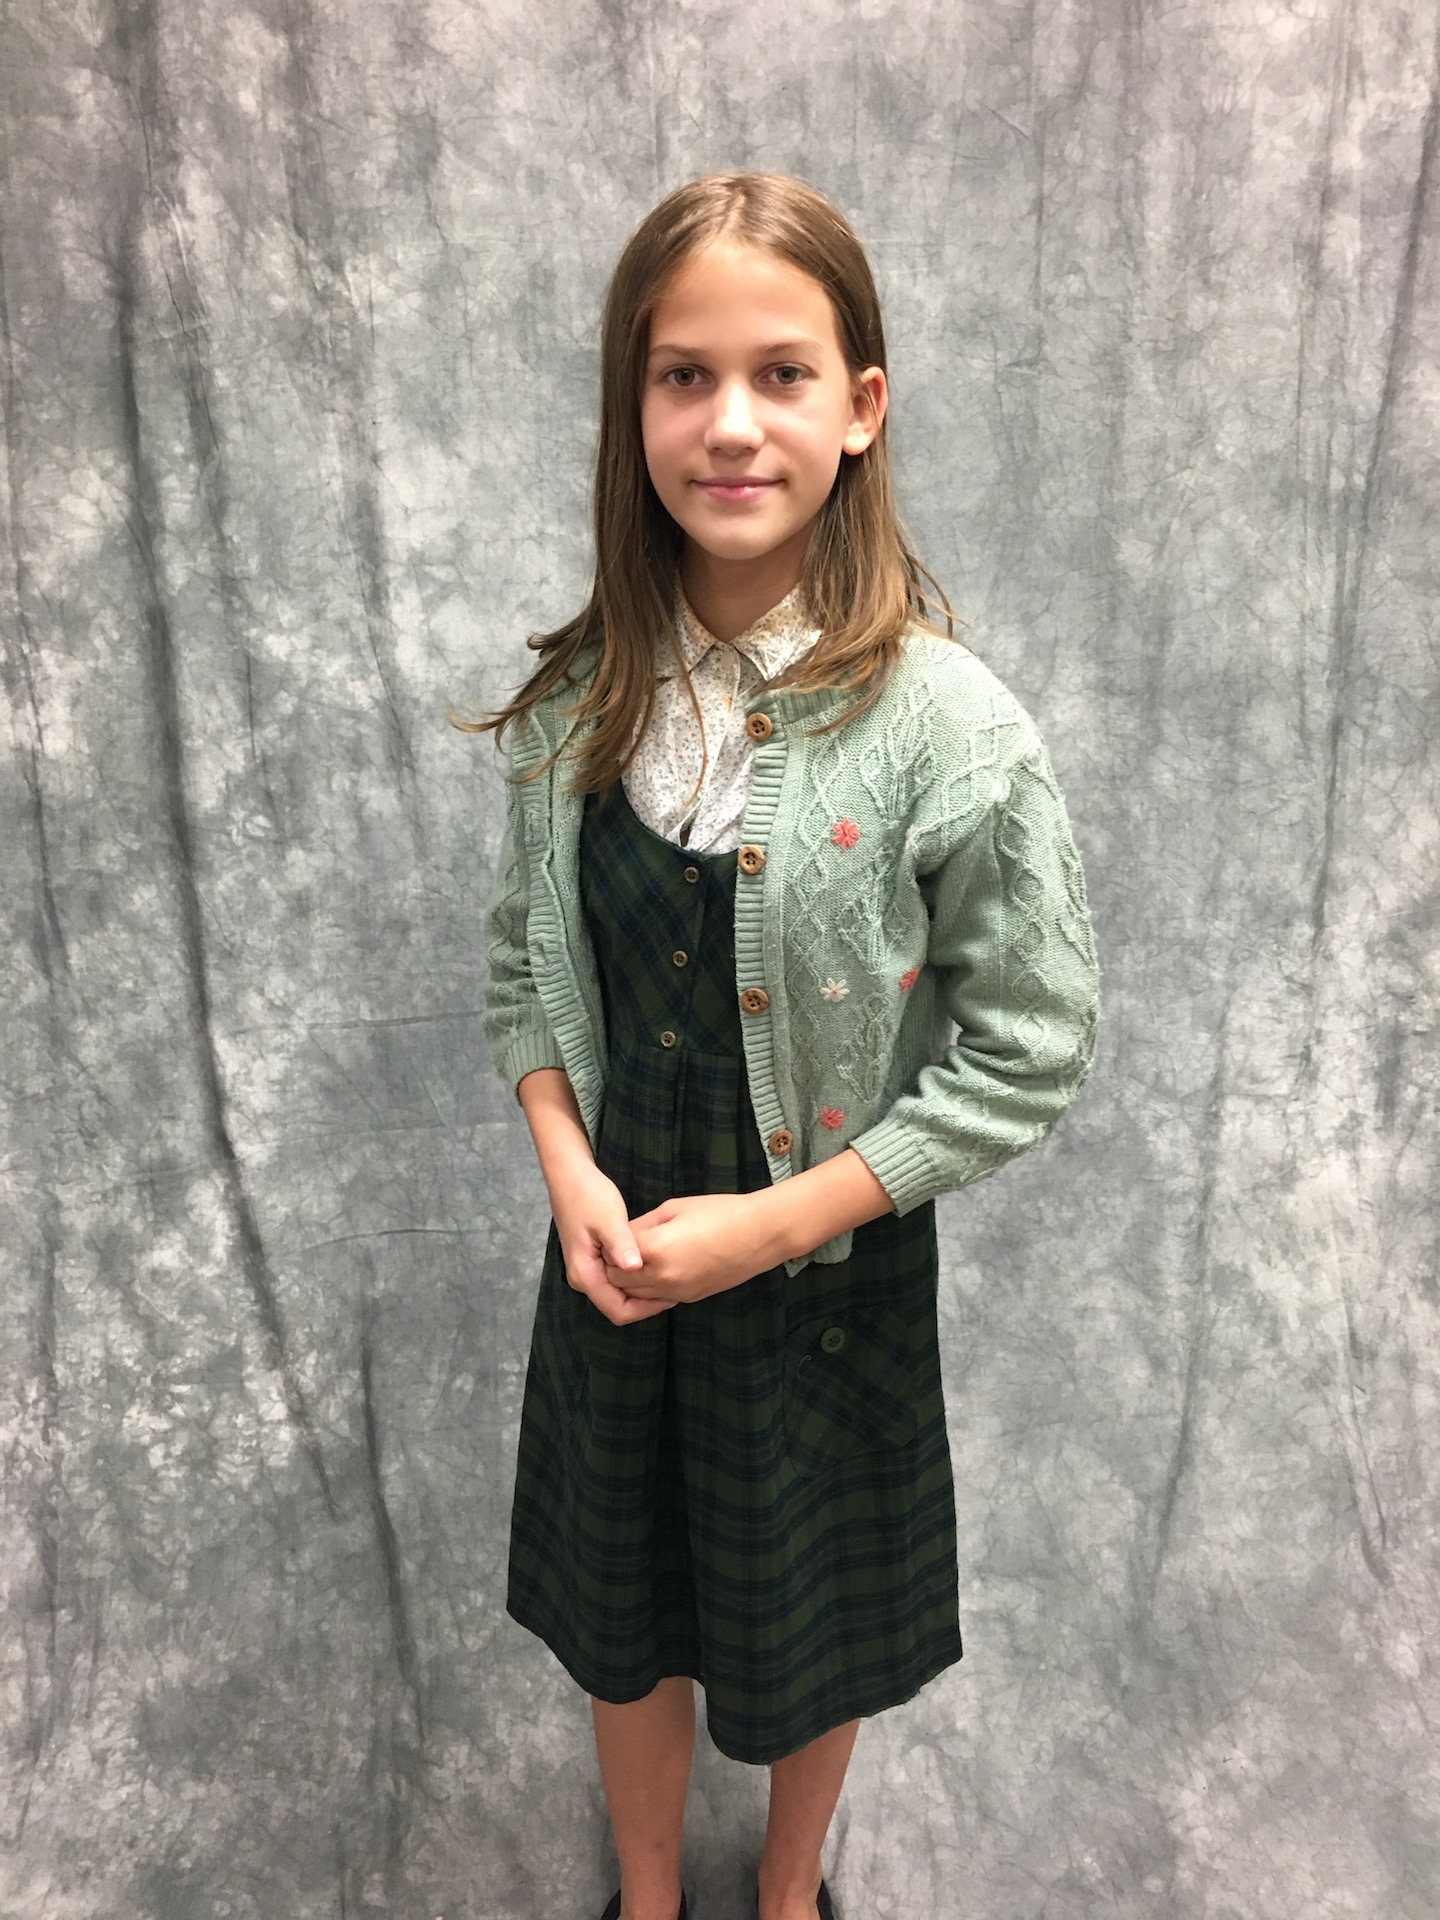 LWW Narnia Lucy Pevensie Wartime Costume vs1